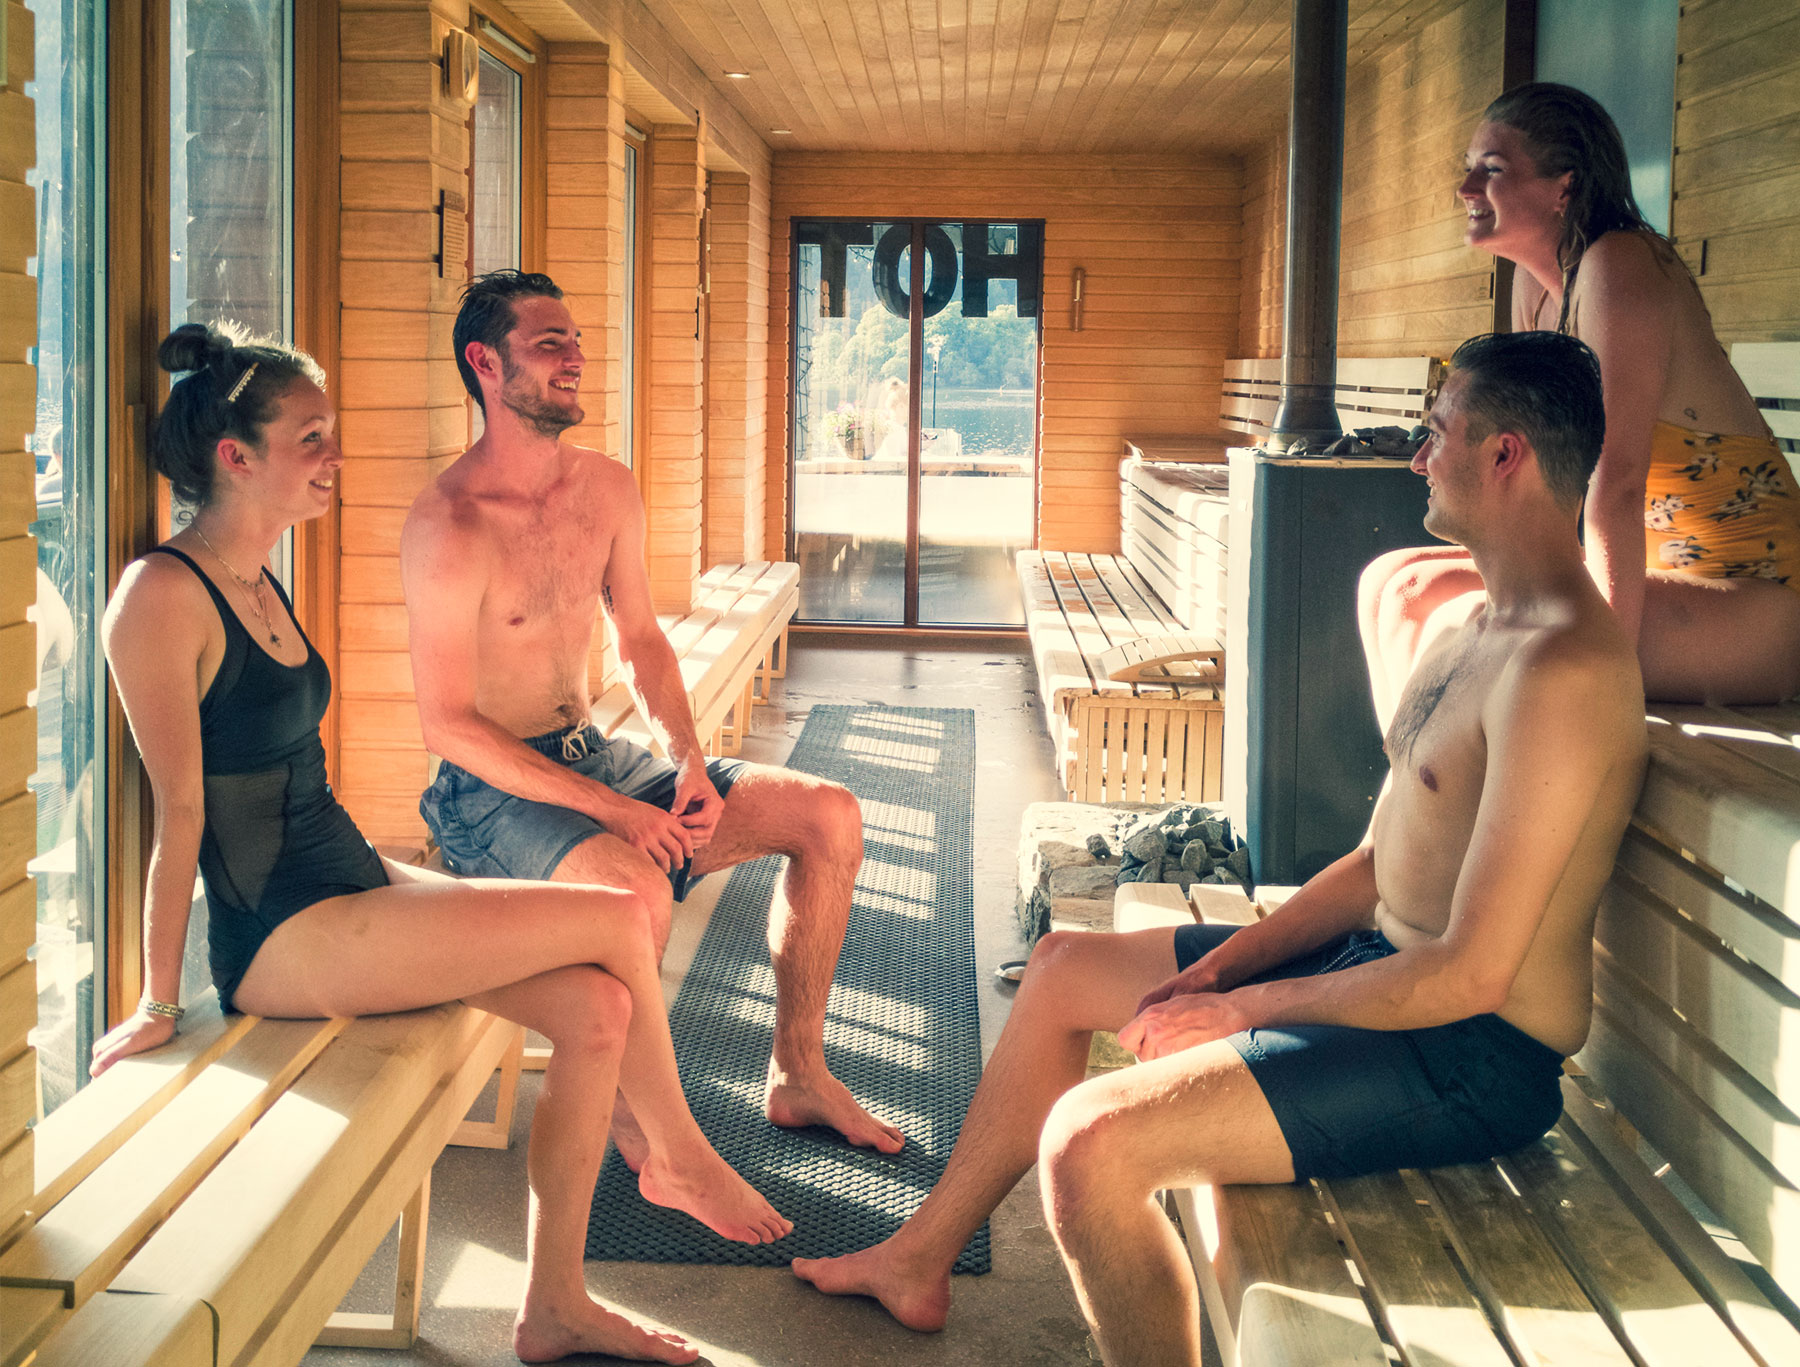 Four people sitting in the Hotbox Spa